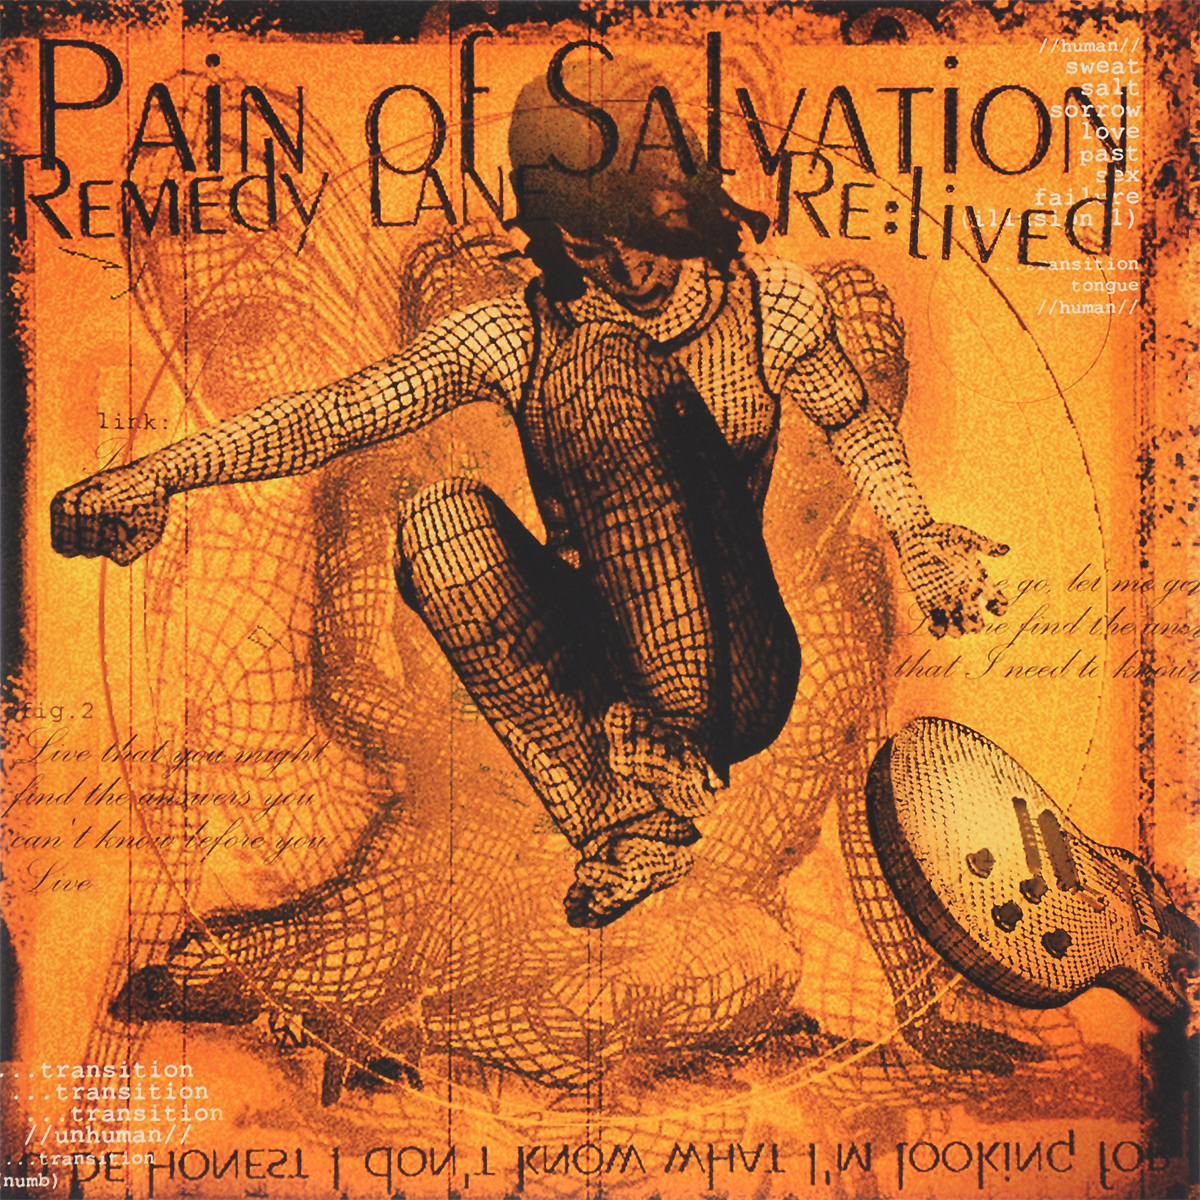 Pain Of Salvation Pain Of Salvation. Remedy Lane Re:Lived (2 LP + CD) cd pain of salvation in the passing light of day